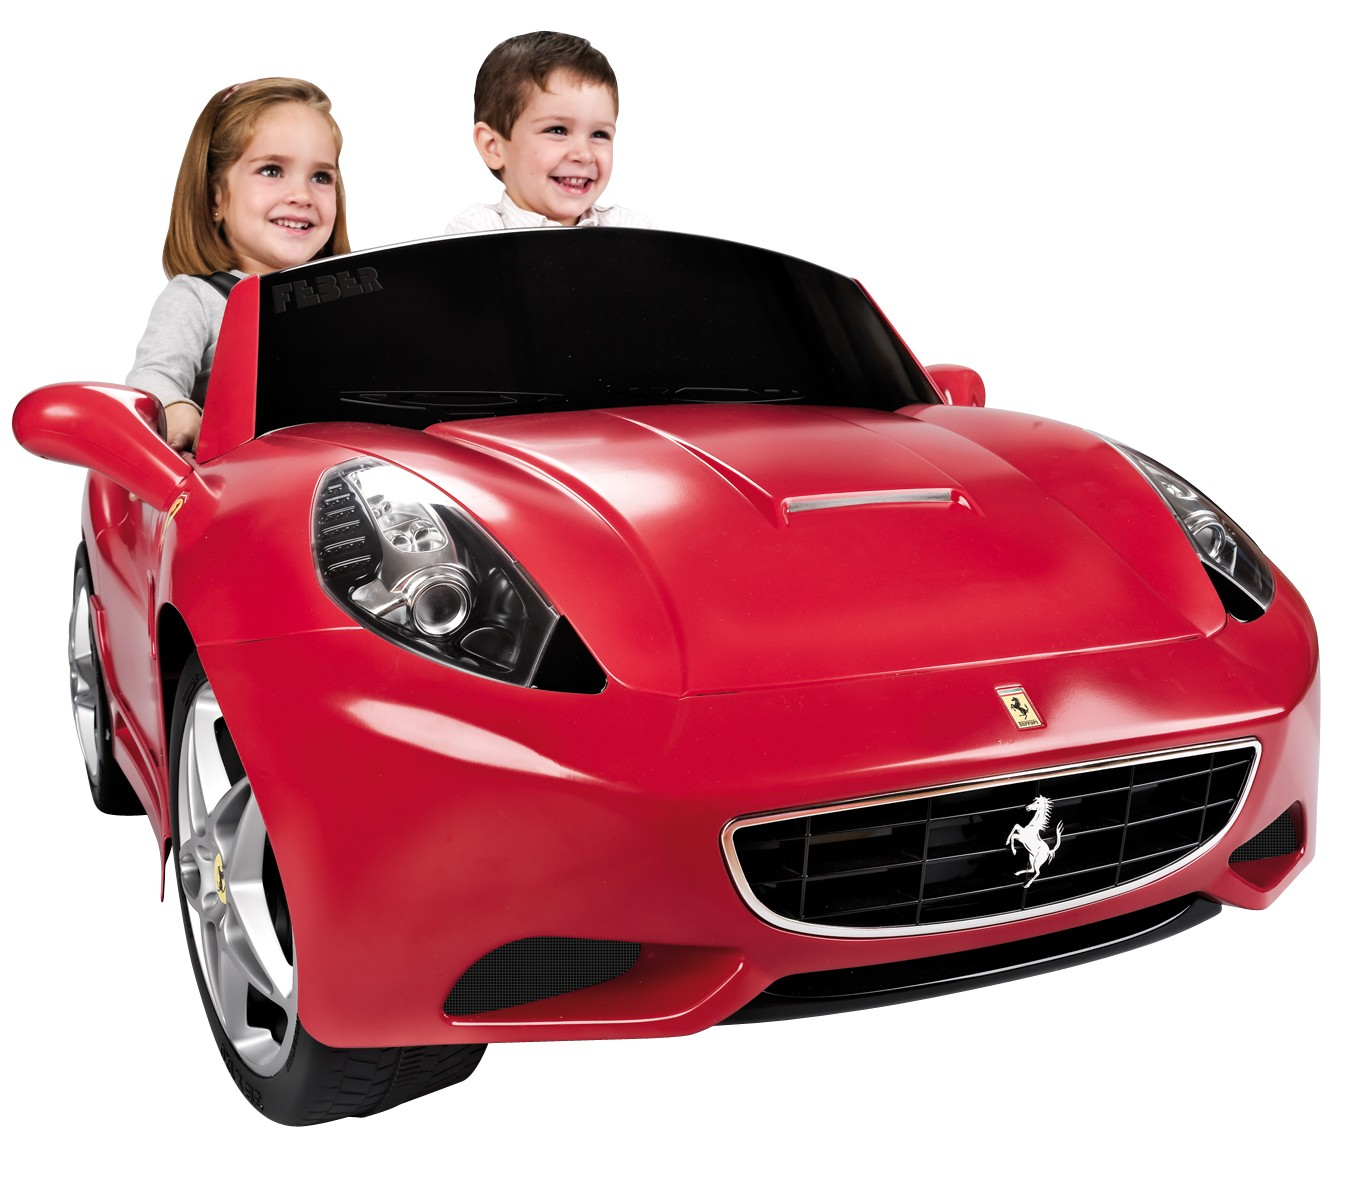 the licensed 12v feber ferrari ride on electric car is a top brand 12v ride on car which goes up to 5 kmh and features 2 seats fo